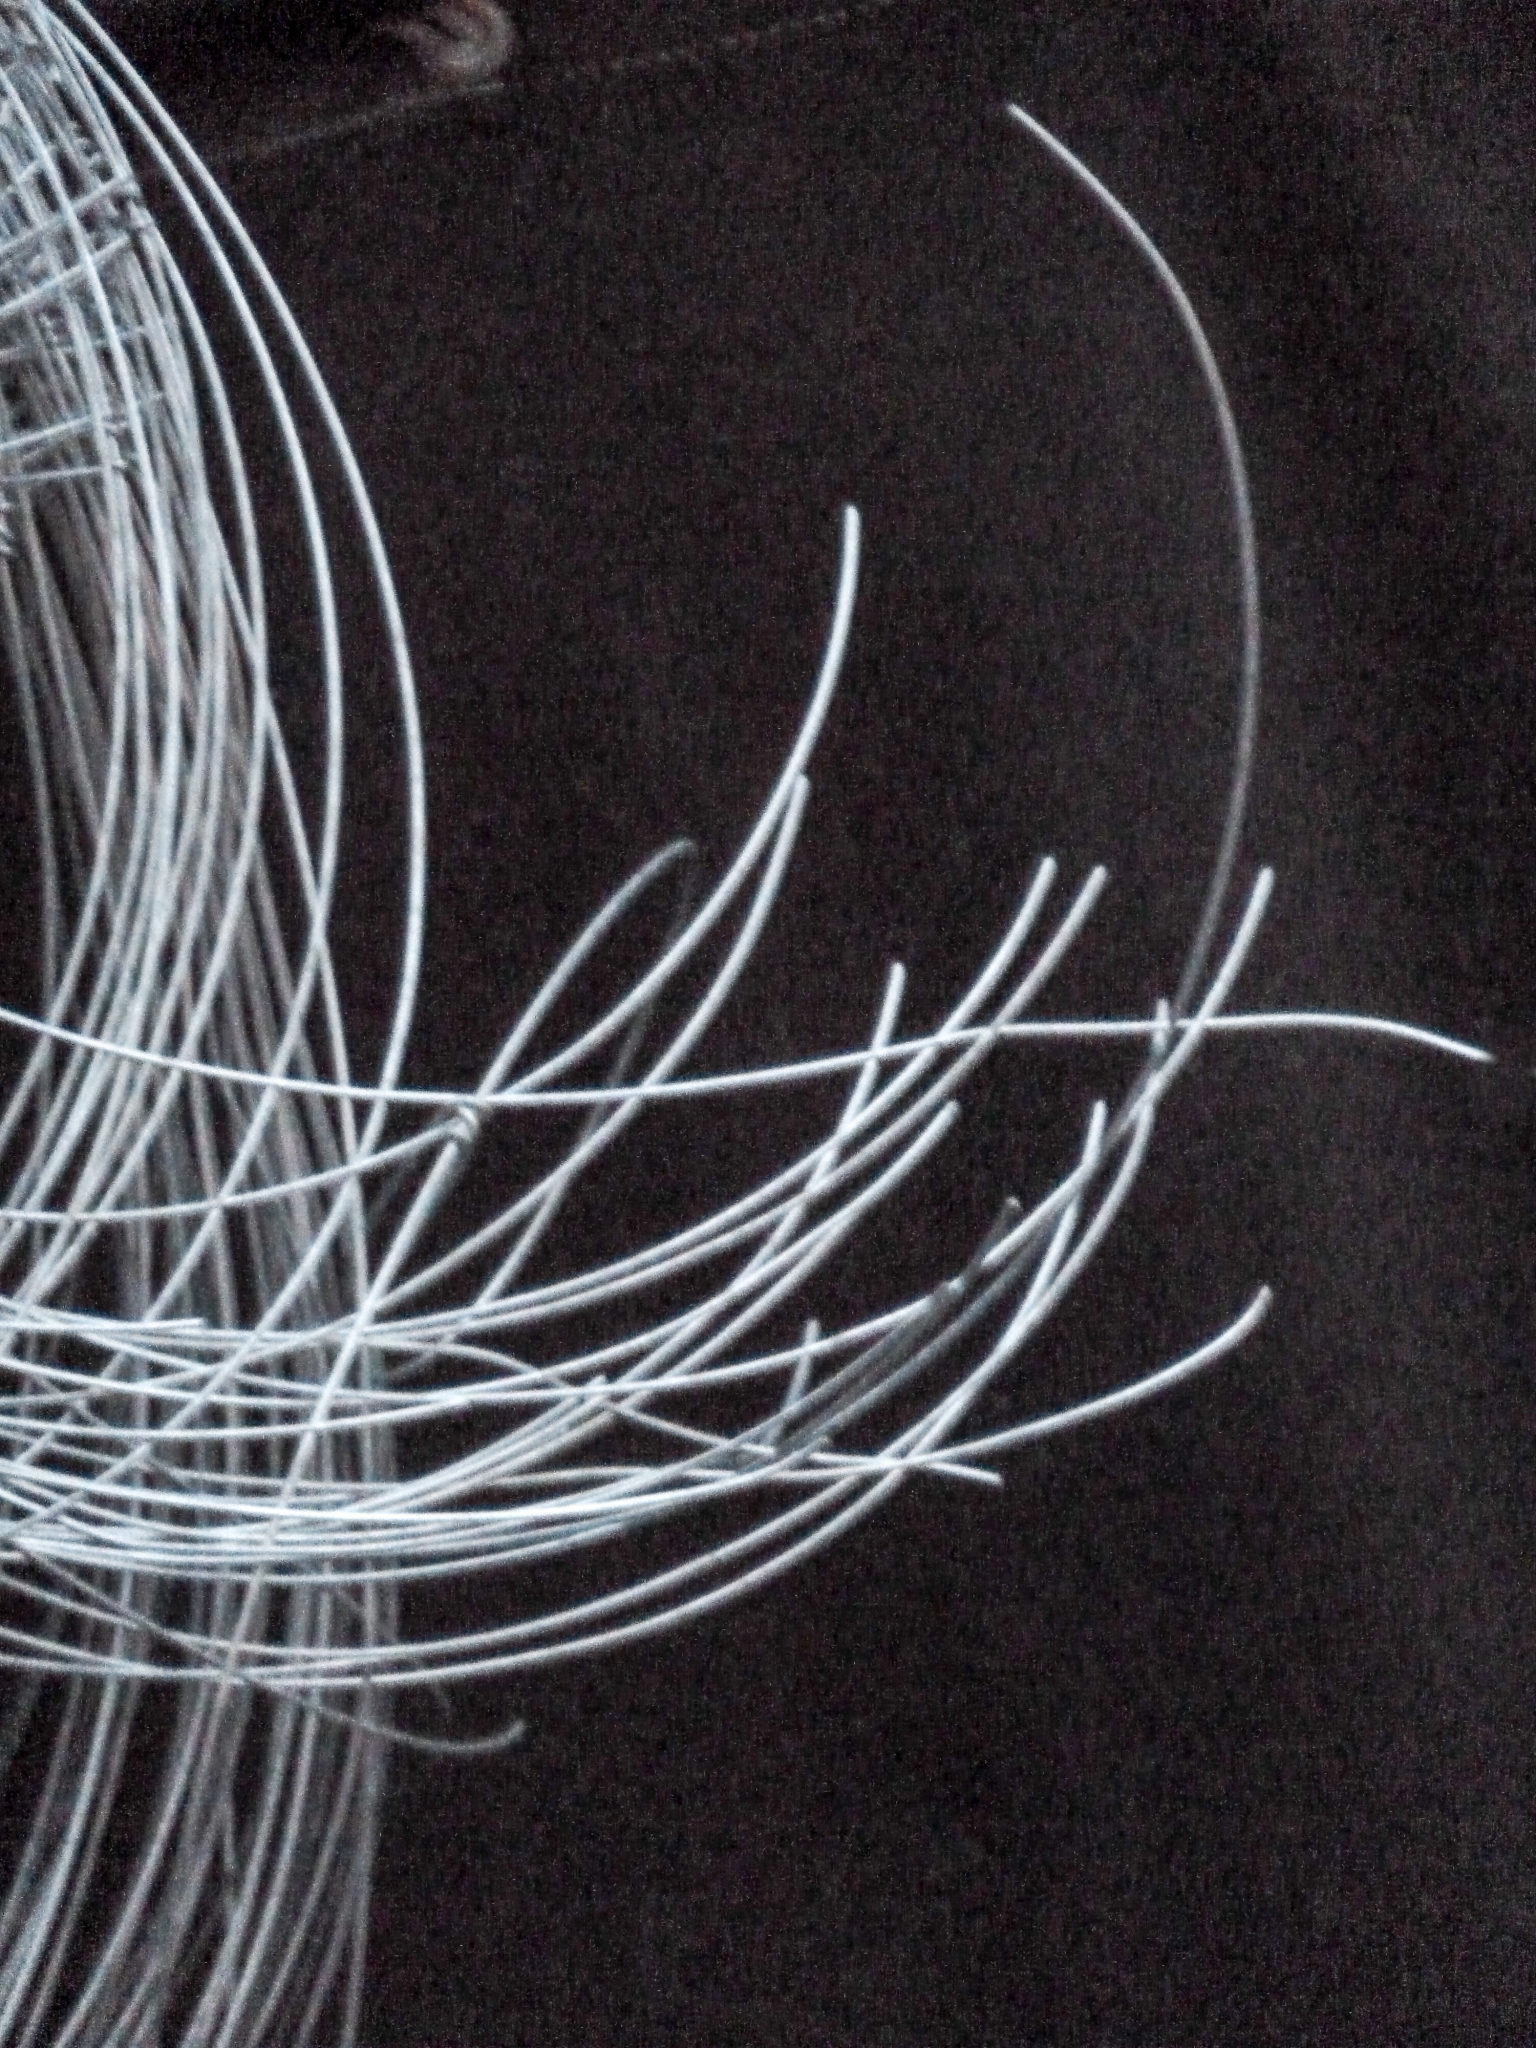 lines of abstraction